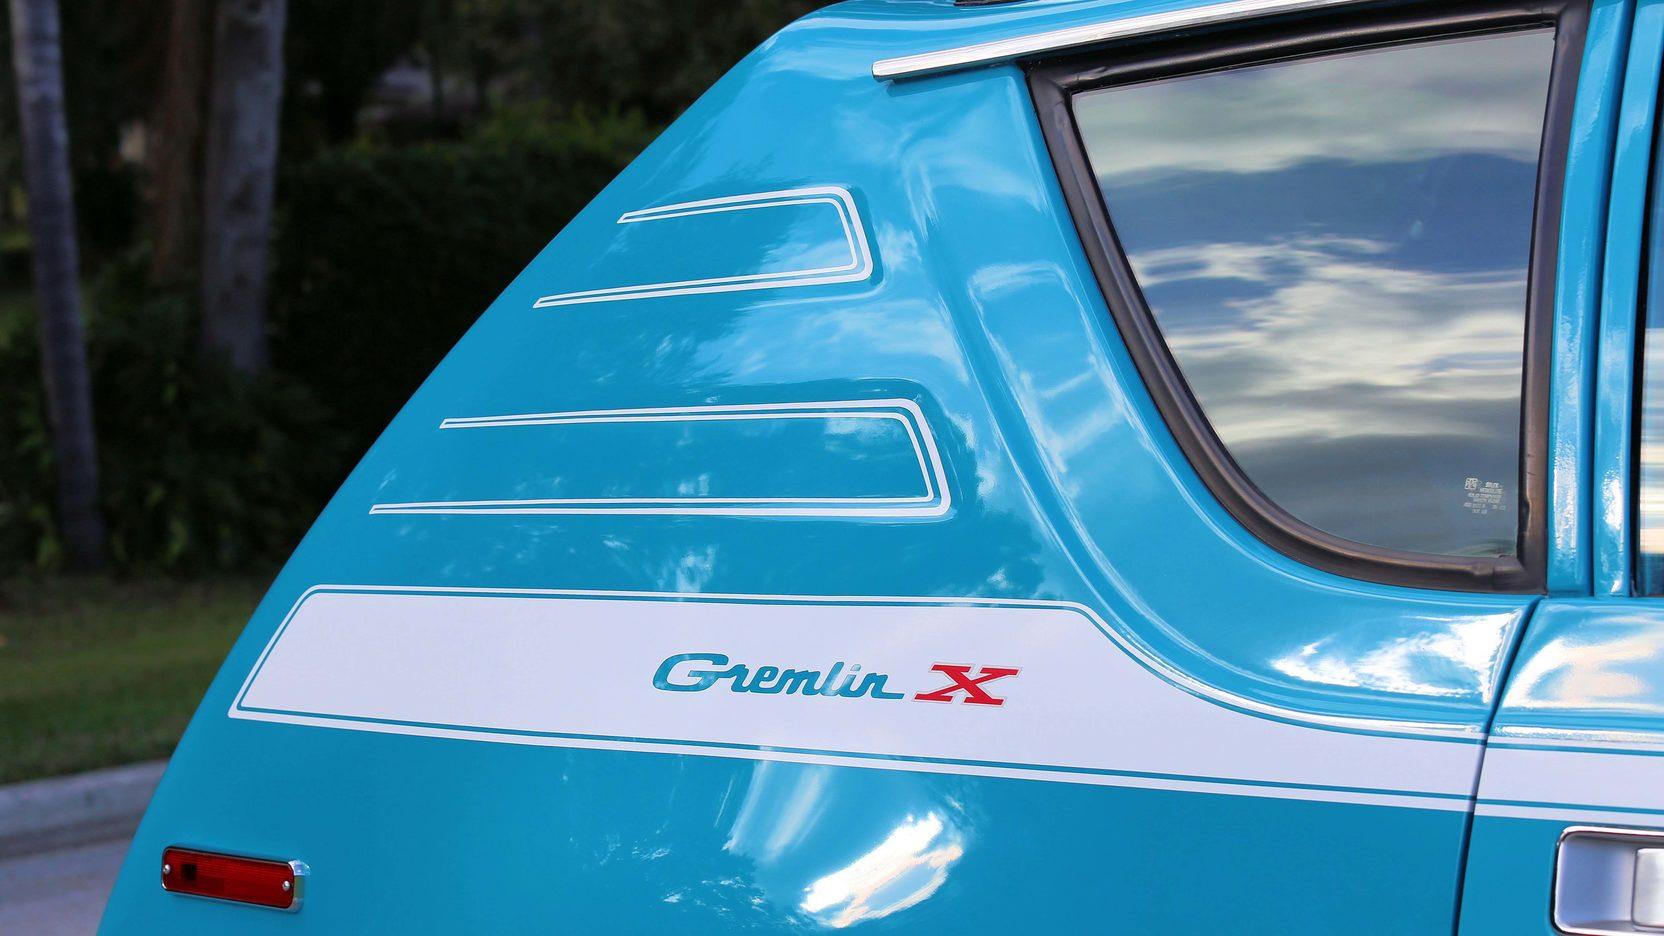 1972 AMC Gremlin X paint detail